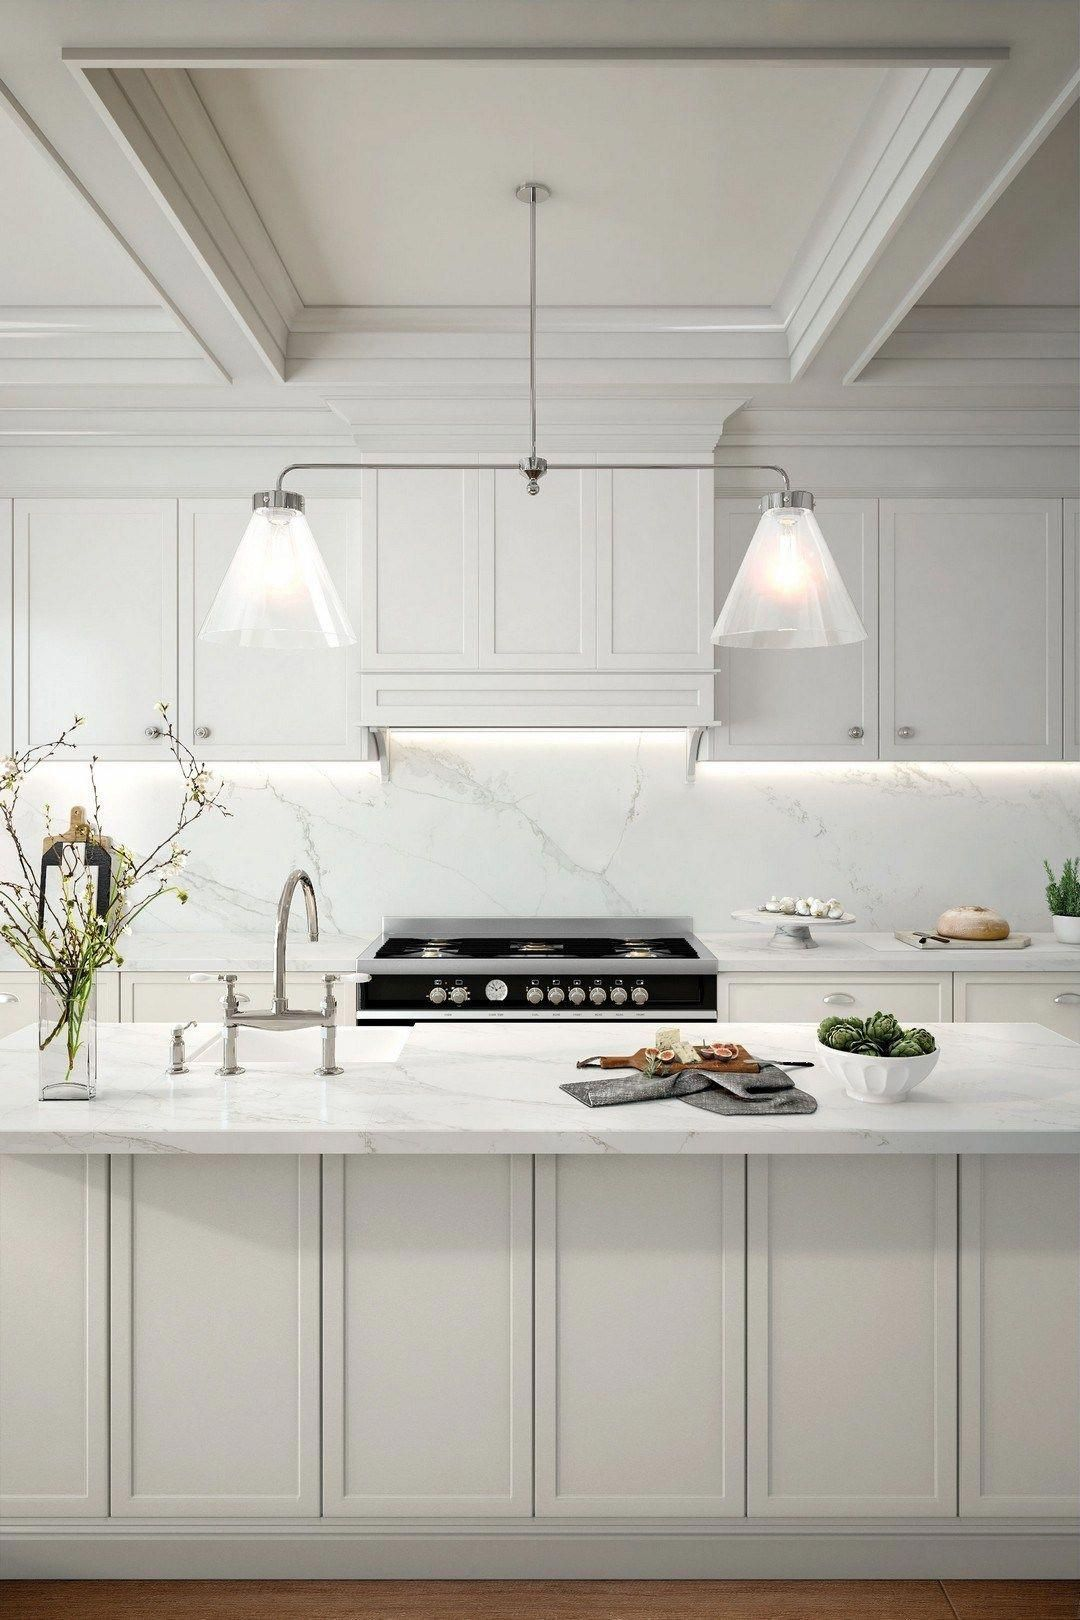 40 Exciting Small Modern Kitchen Design Ideas 15 Kitchendecorpad Kitchenremodels Modern Kitchen Design Small Modern Kitchens Grey Marble Kitchen